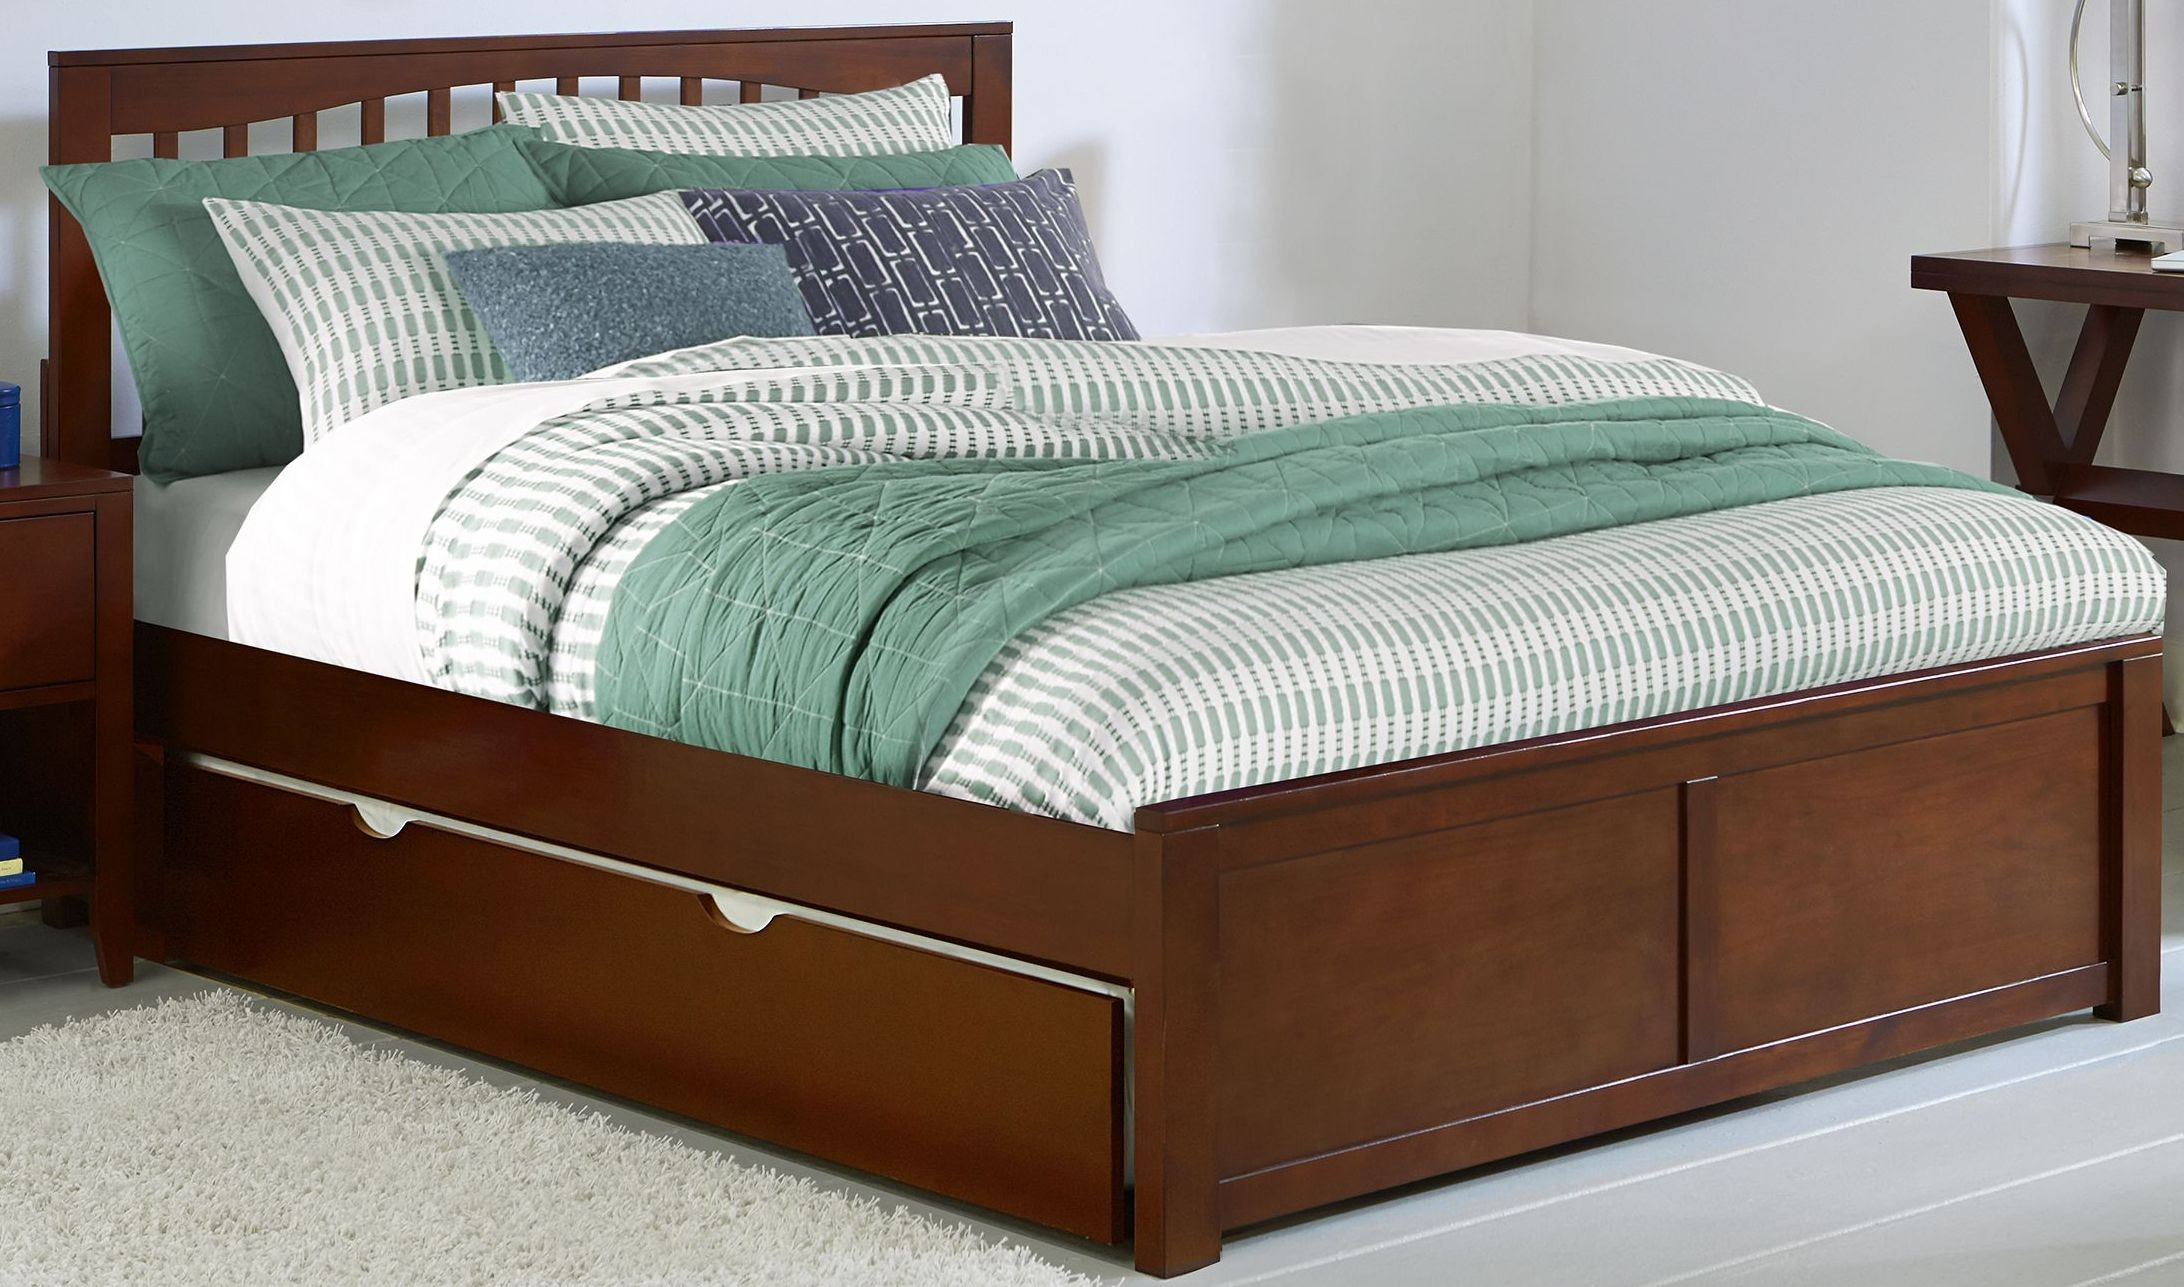 Queen Trundle Beds 28 Images Diy Platform Bed Queen Discover Woodworking Projects Bed